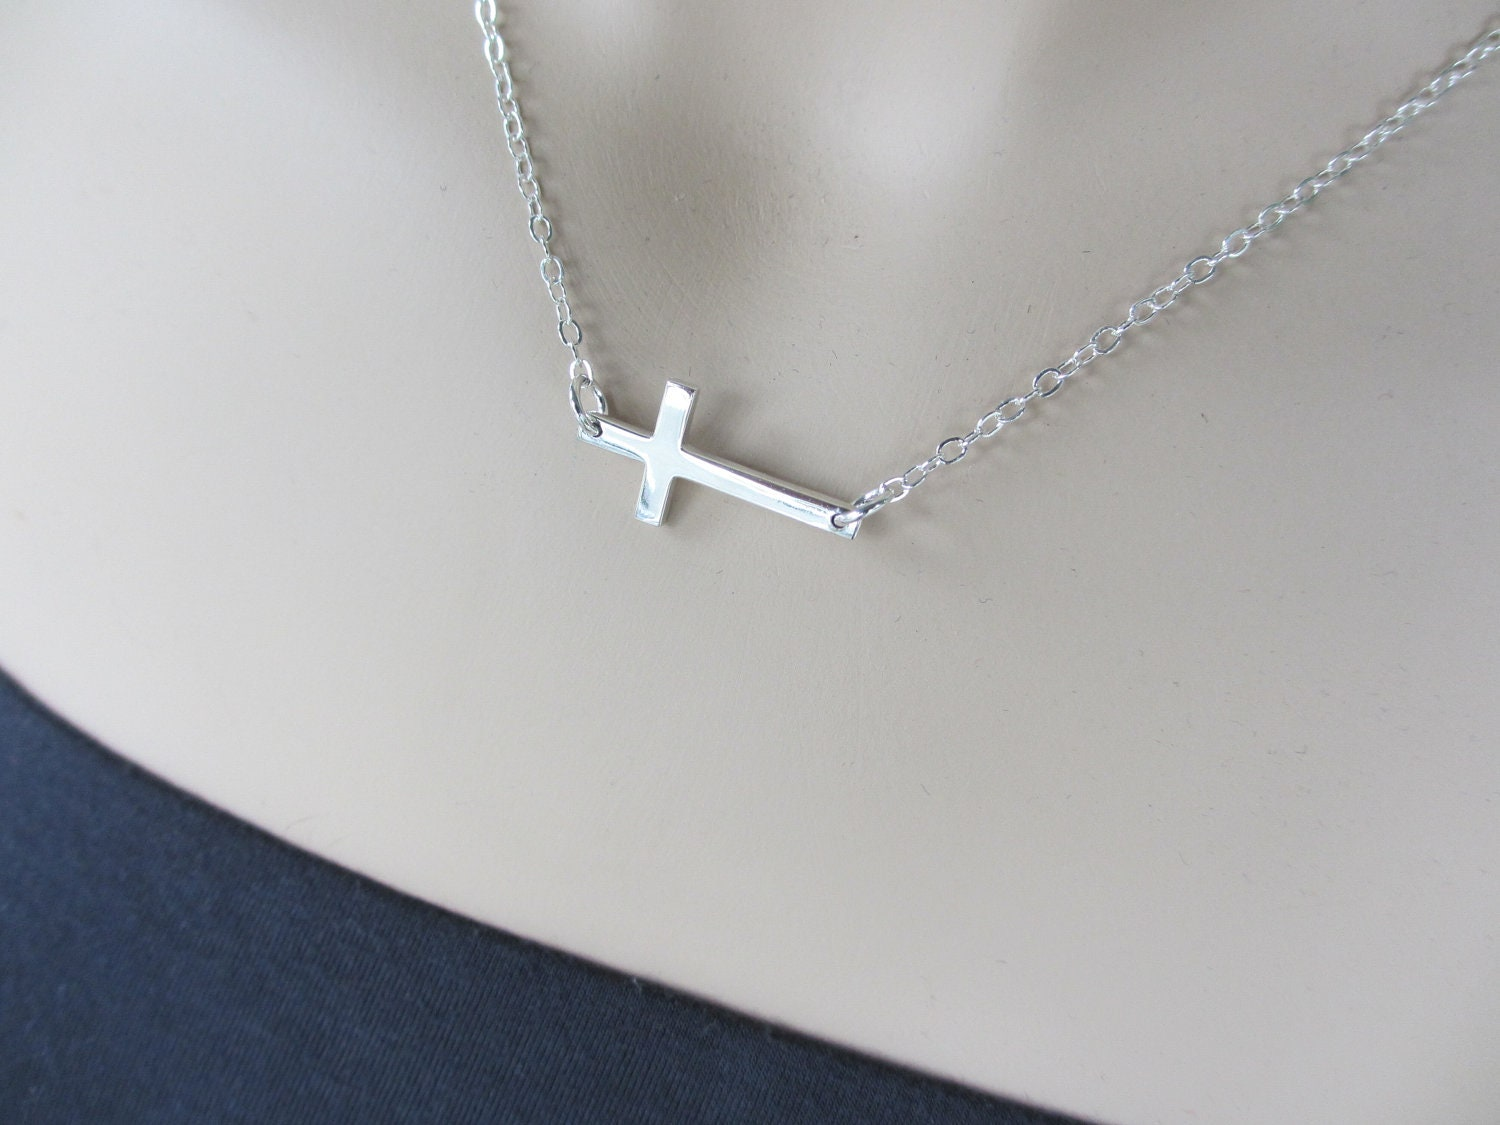 sideways cross necklace sterling silver cross necklace. Black Bedroom Furniture Sets. Home Design Ideas